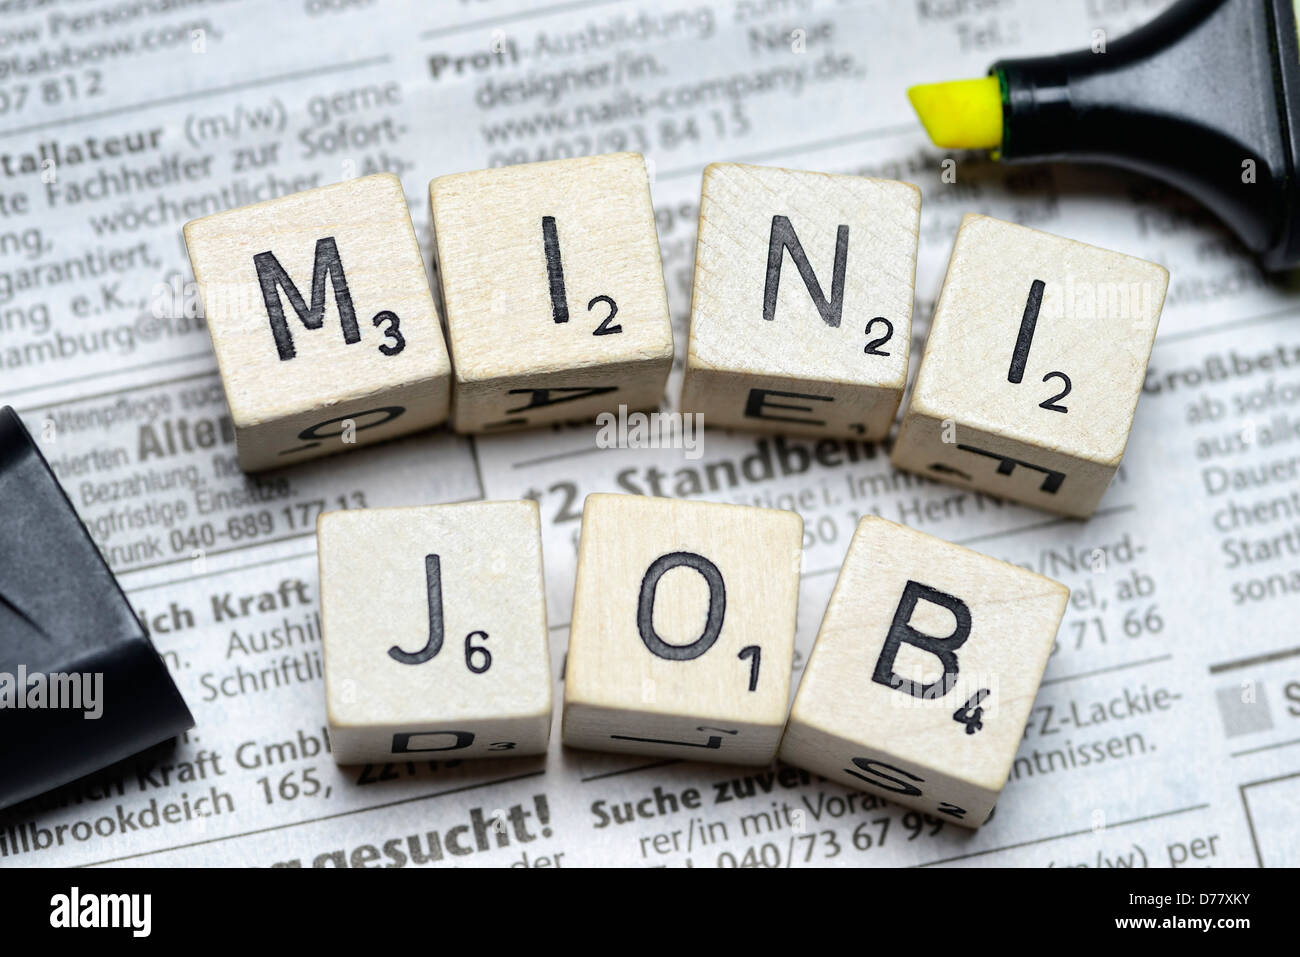 Stroke minijob from cube letter on newspaper advertisements - Stock Image